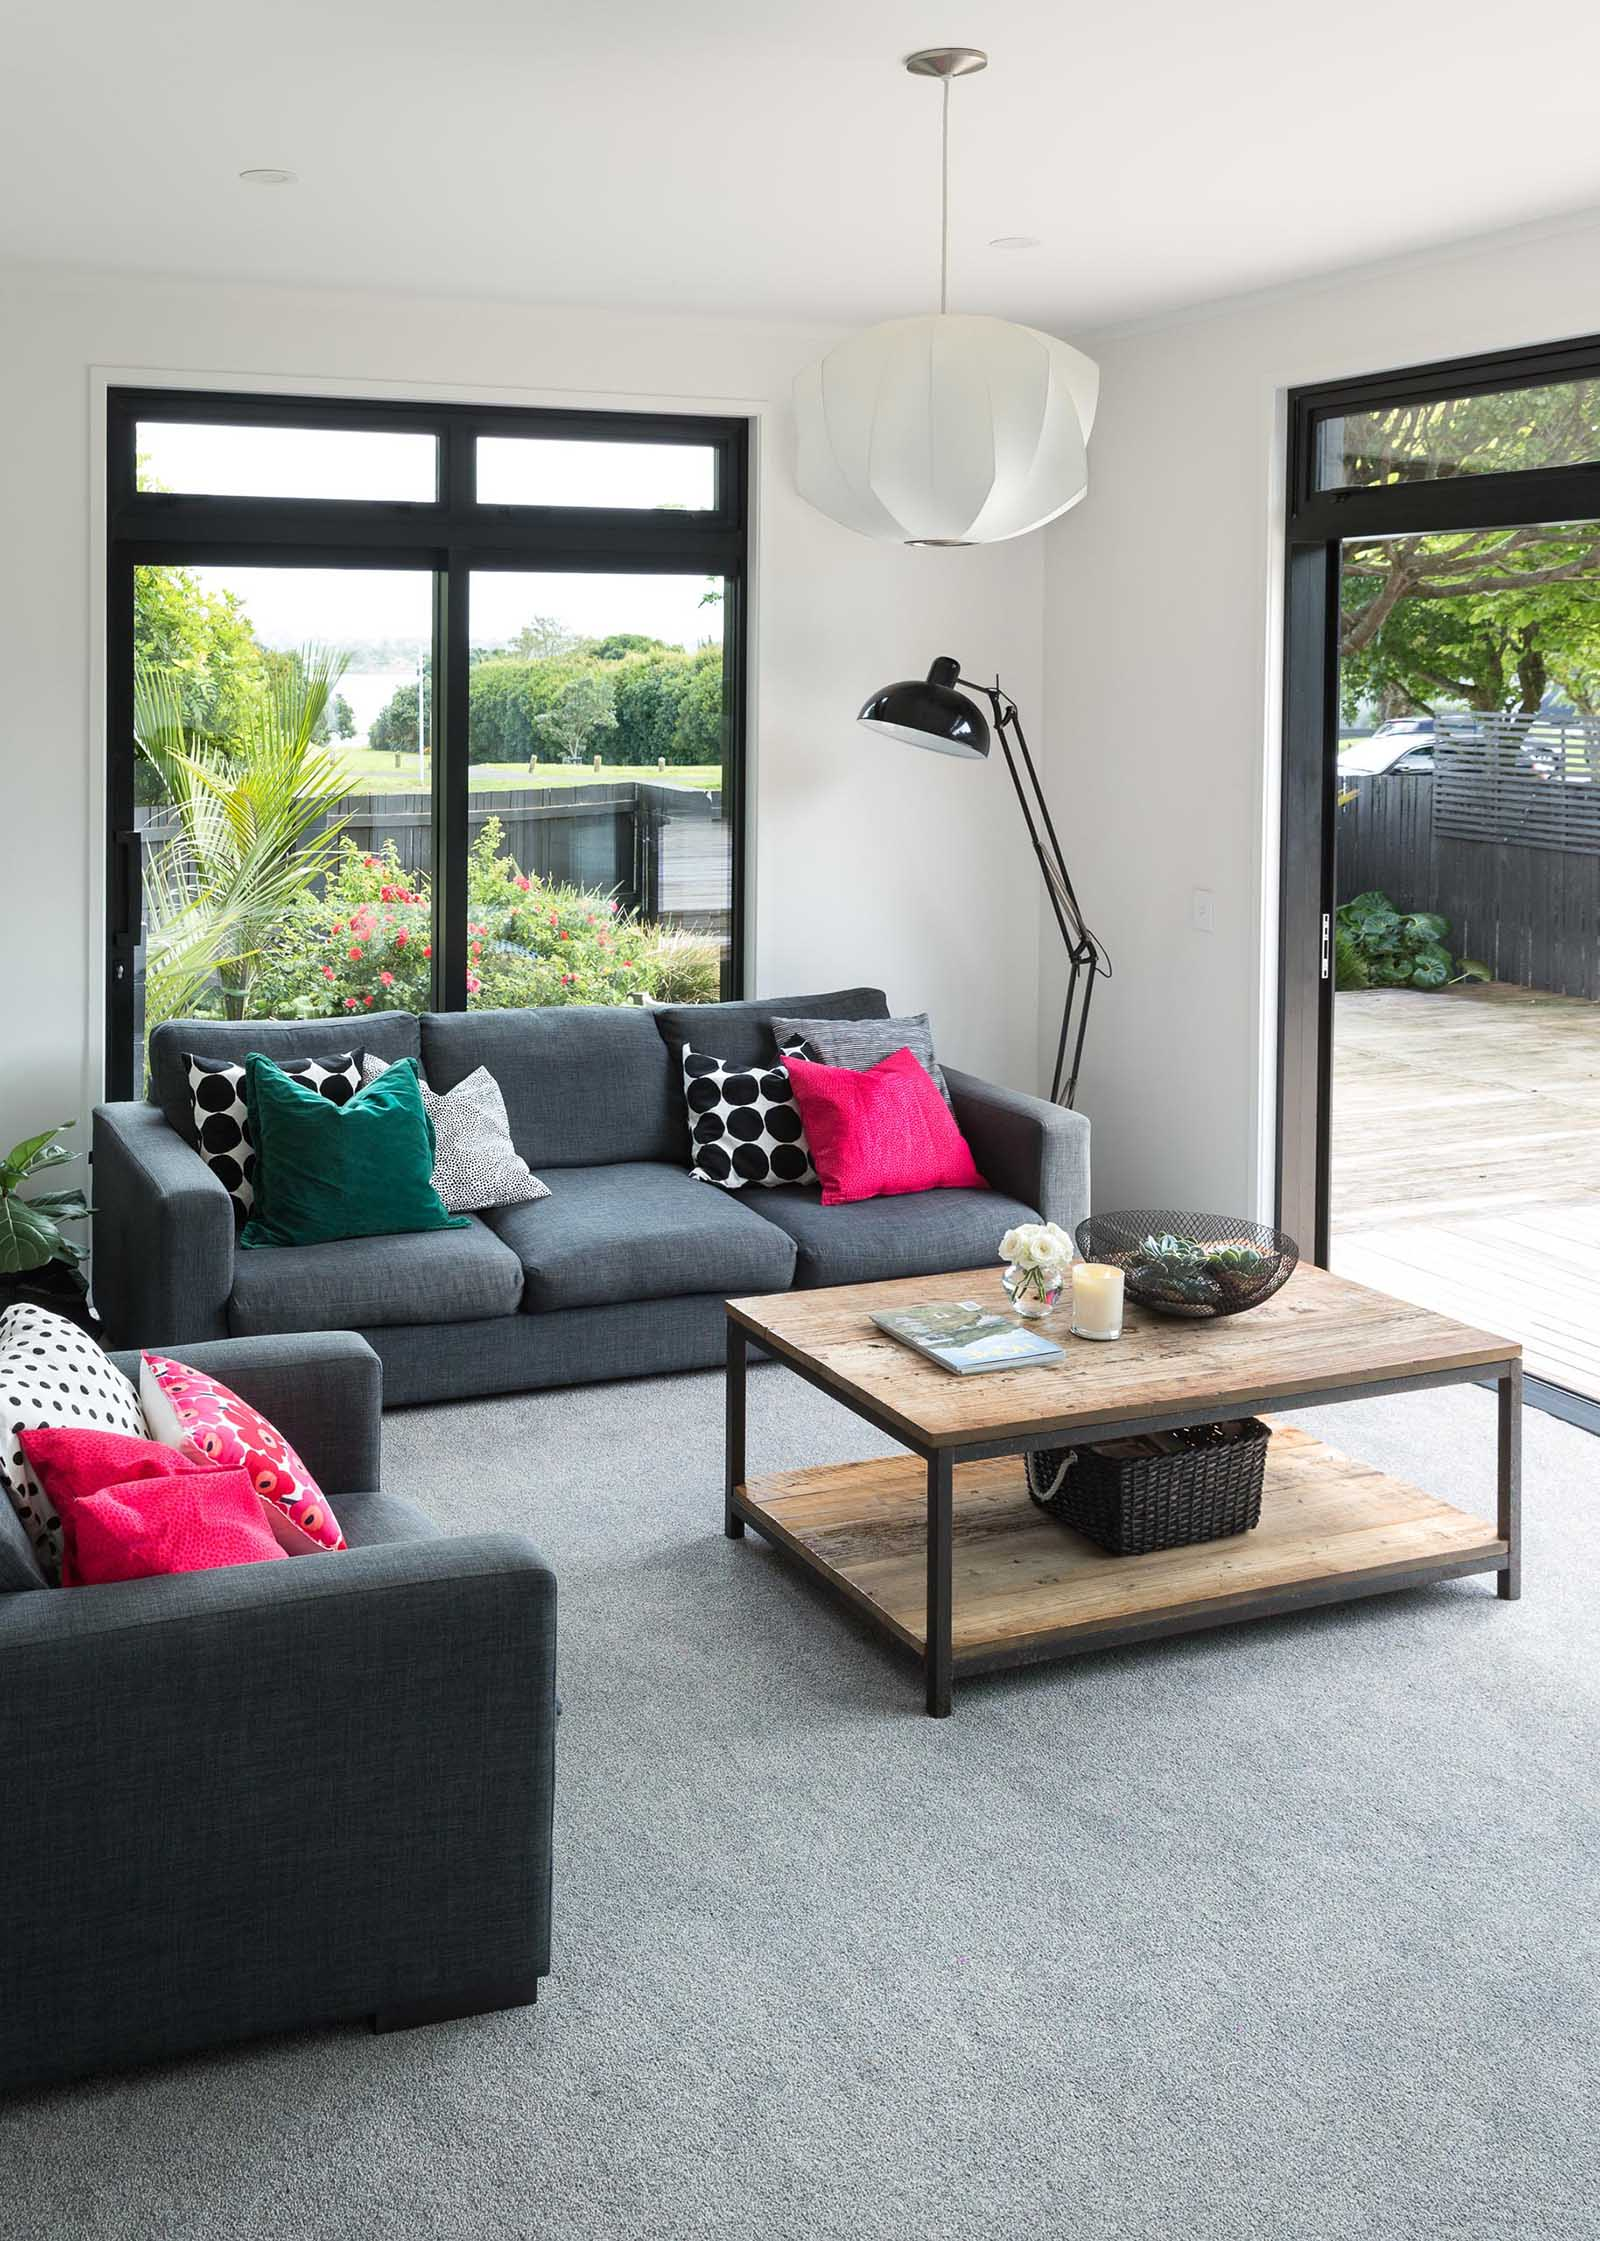 This modern living room includes white walls, grey carpet, and bold black window frames.